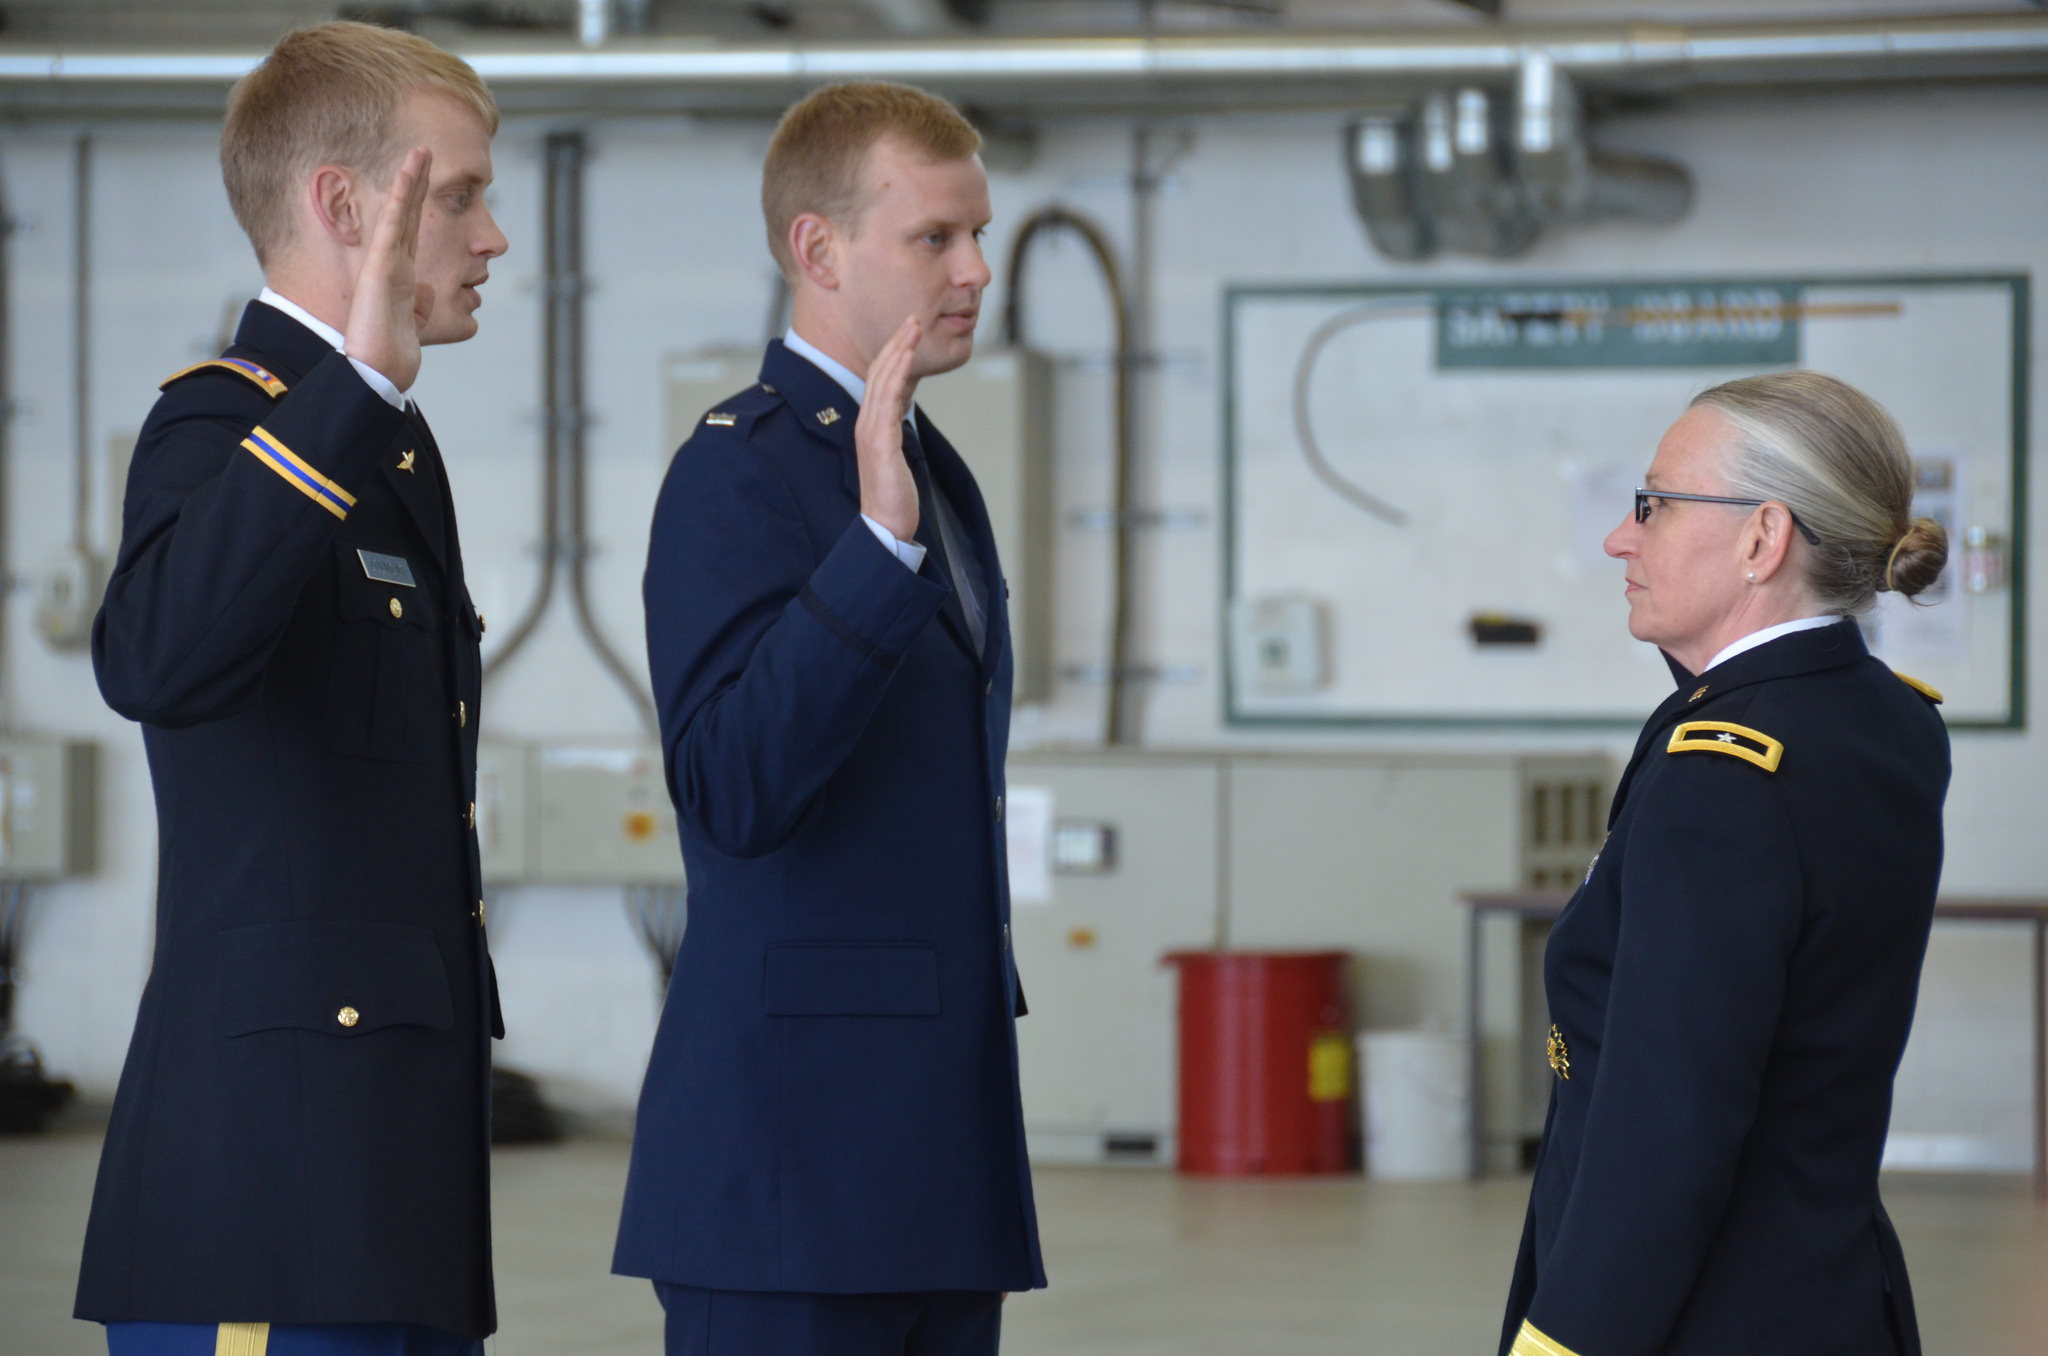 Promotion ceremony brings family, Regular Army, Army Reserve, Air Force together